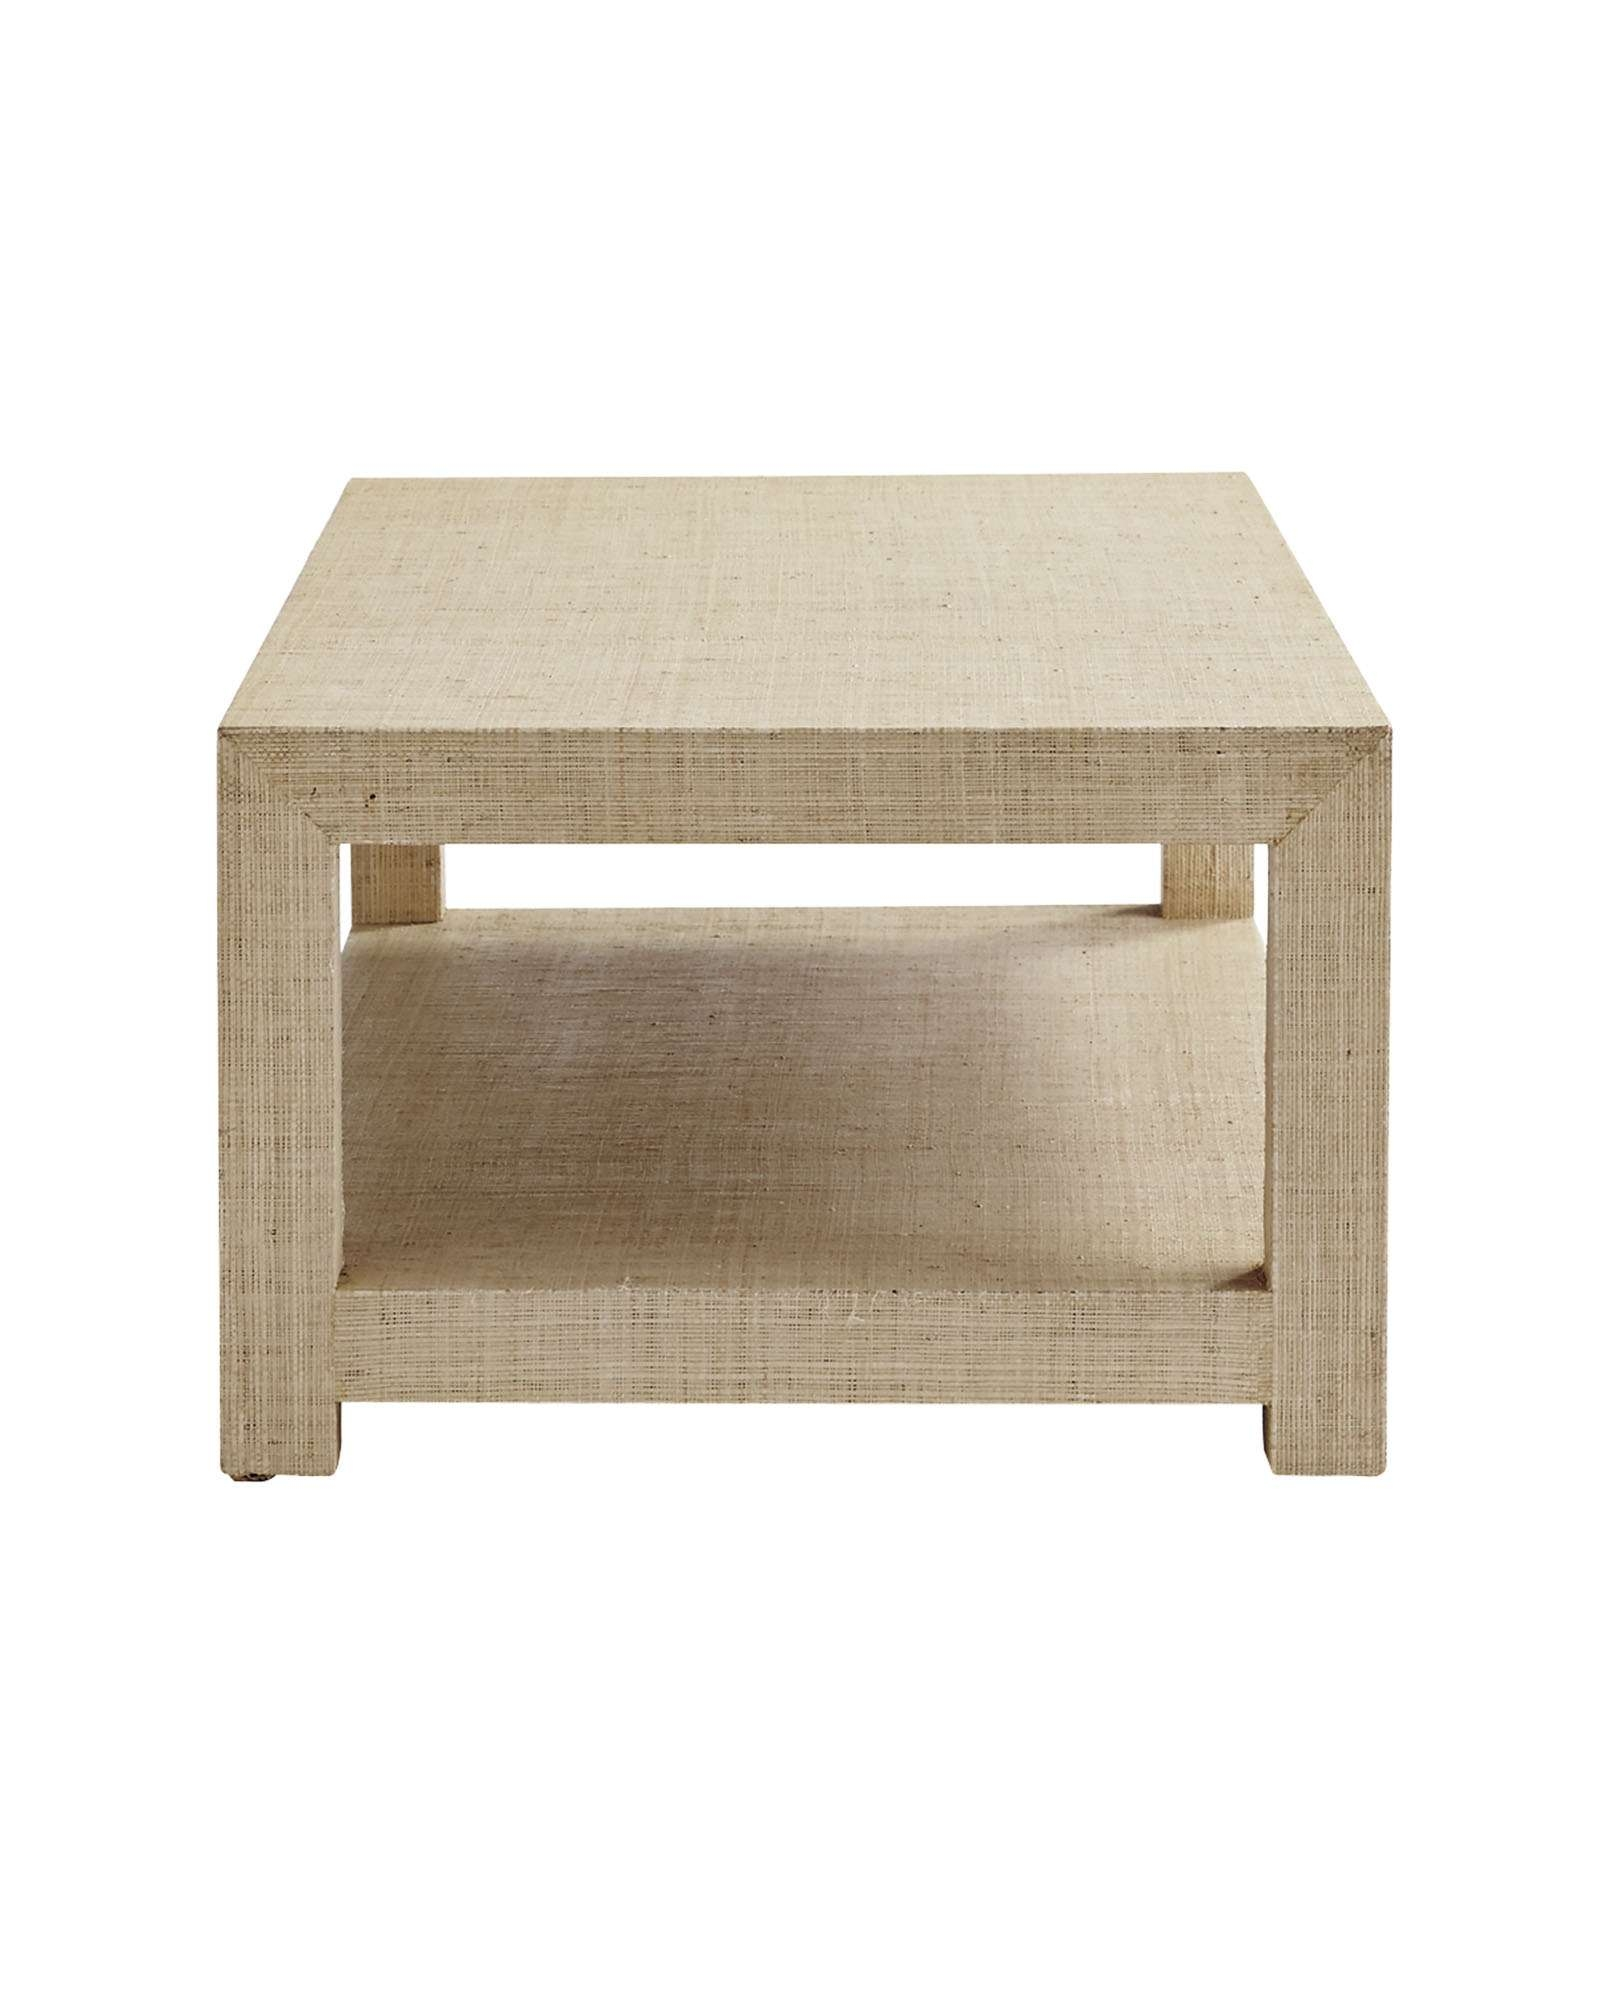 Current Rectangular Coffee Tables With Regard To Blake Raffia Rectangular Coffee Table – Small – Serena & Lily (View 9 of 20)